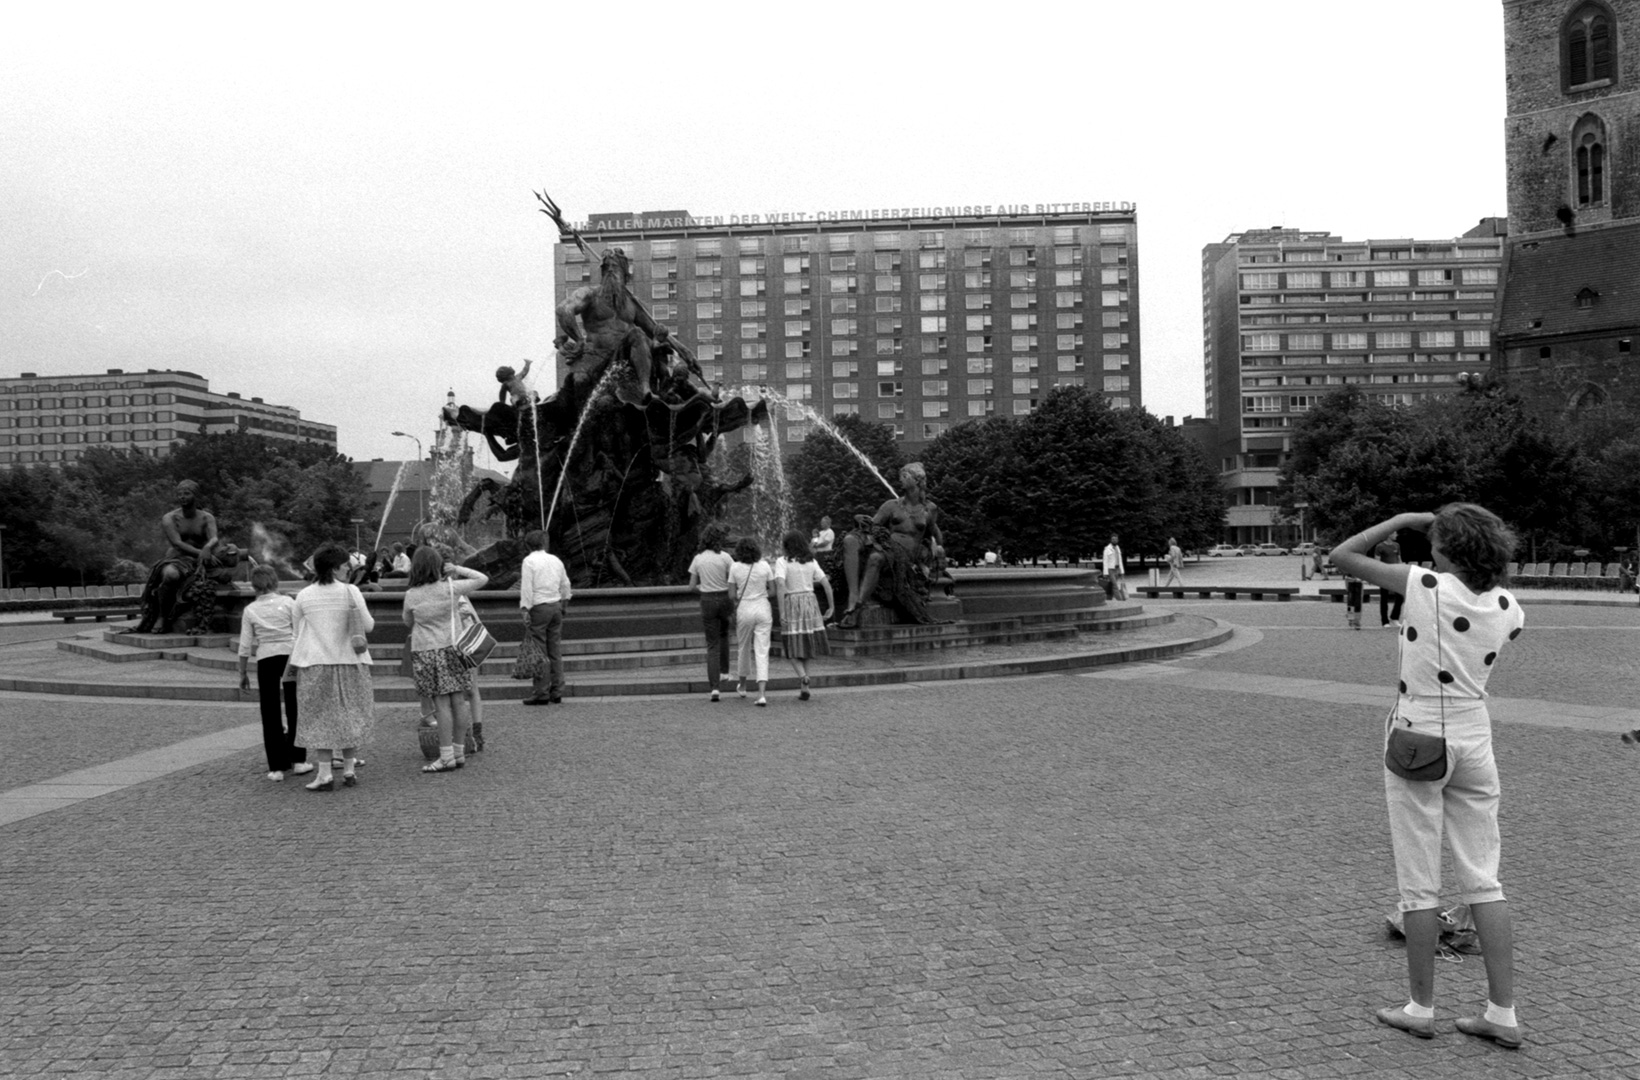 east-berlin-1983_26_Berlino-Est-65